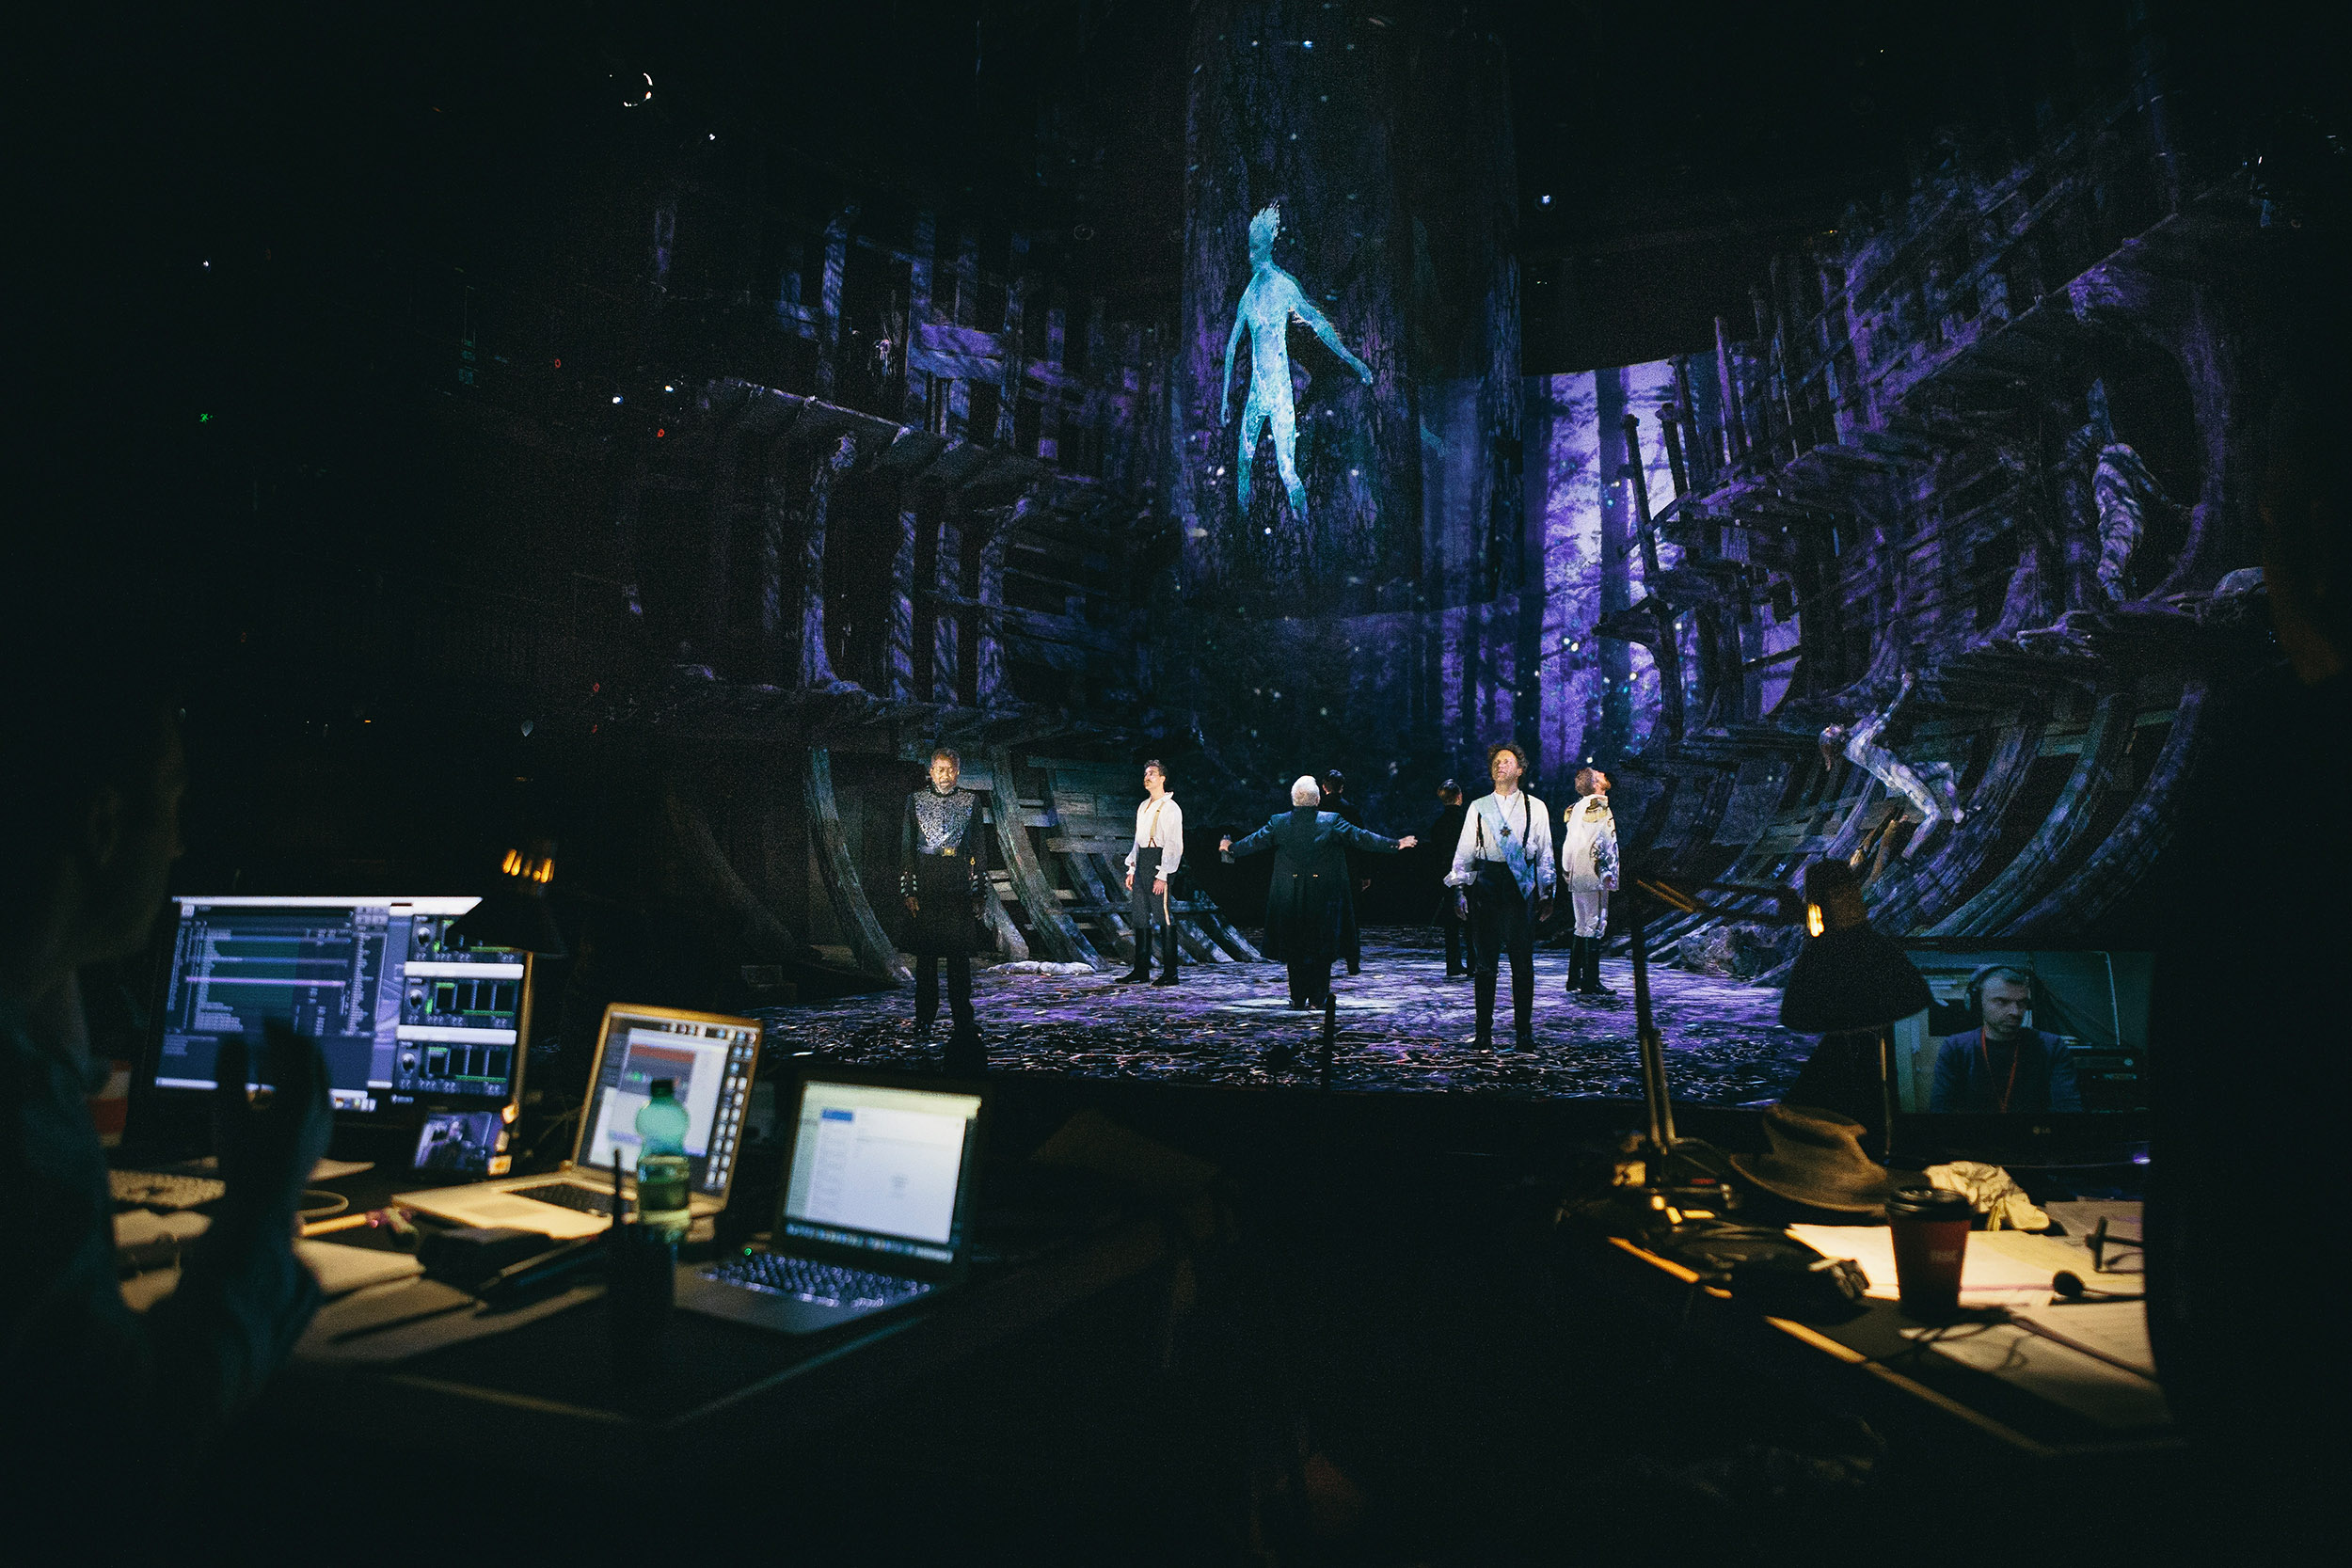 Scenic design that makes smart use of video projections gives the show a seamless cinematic flow